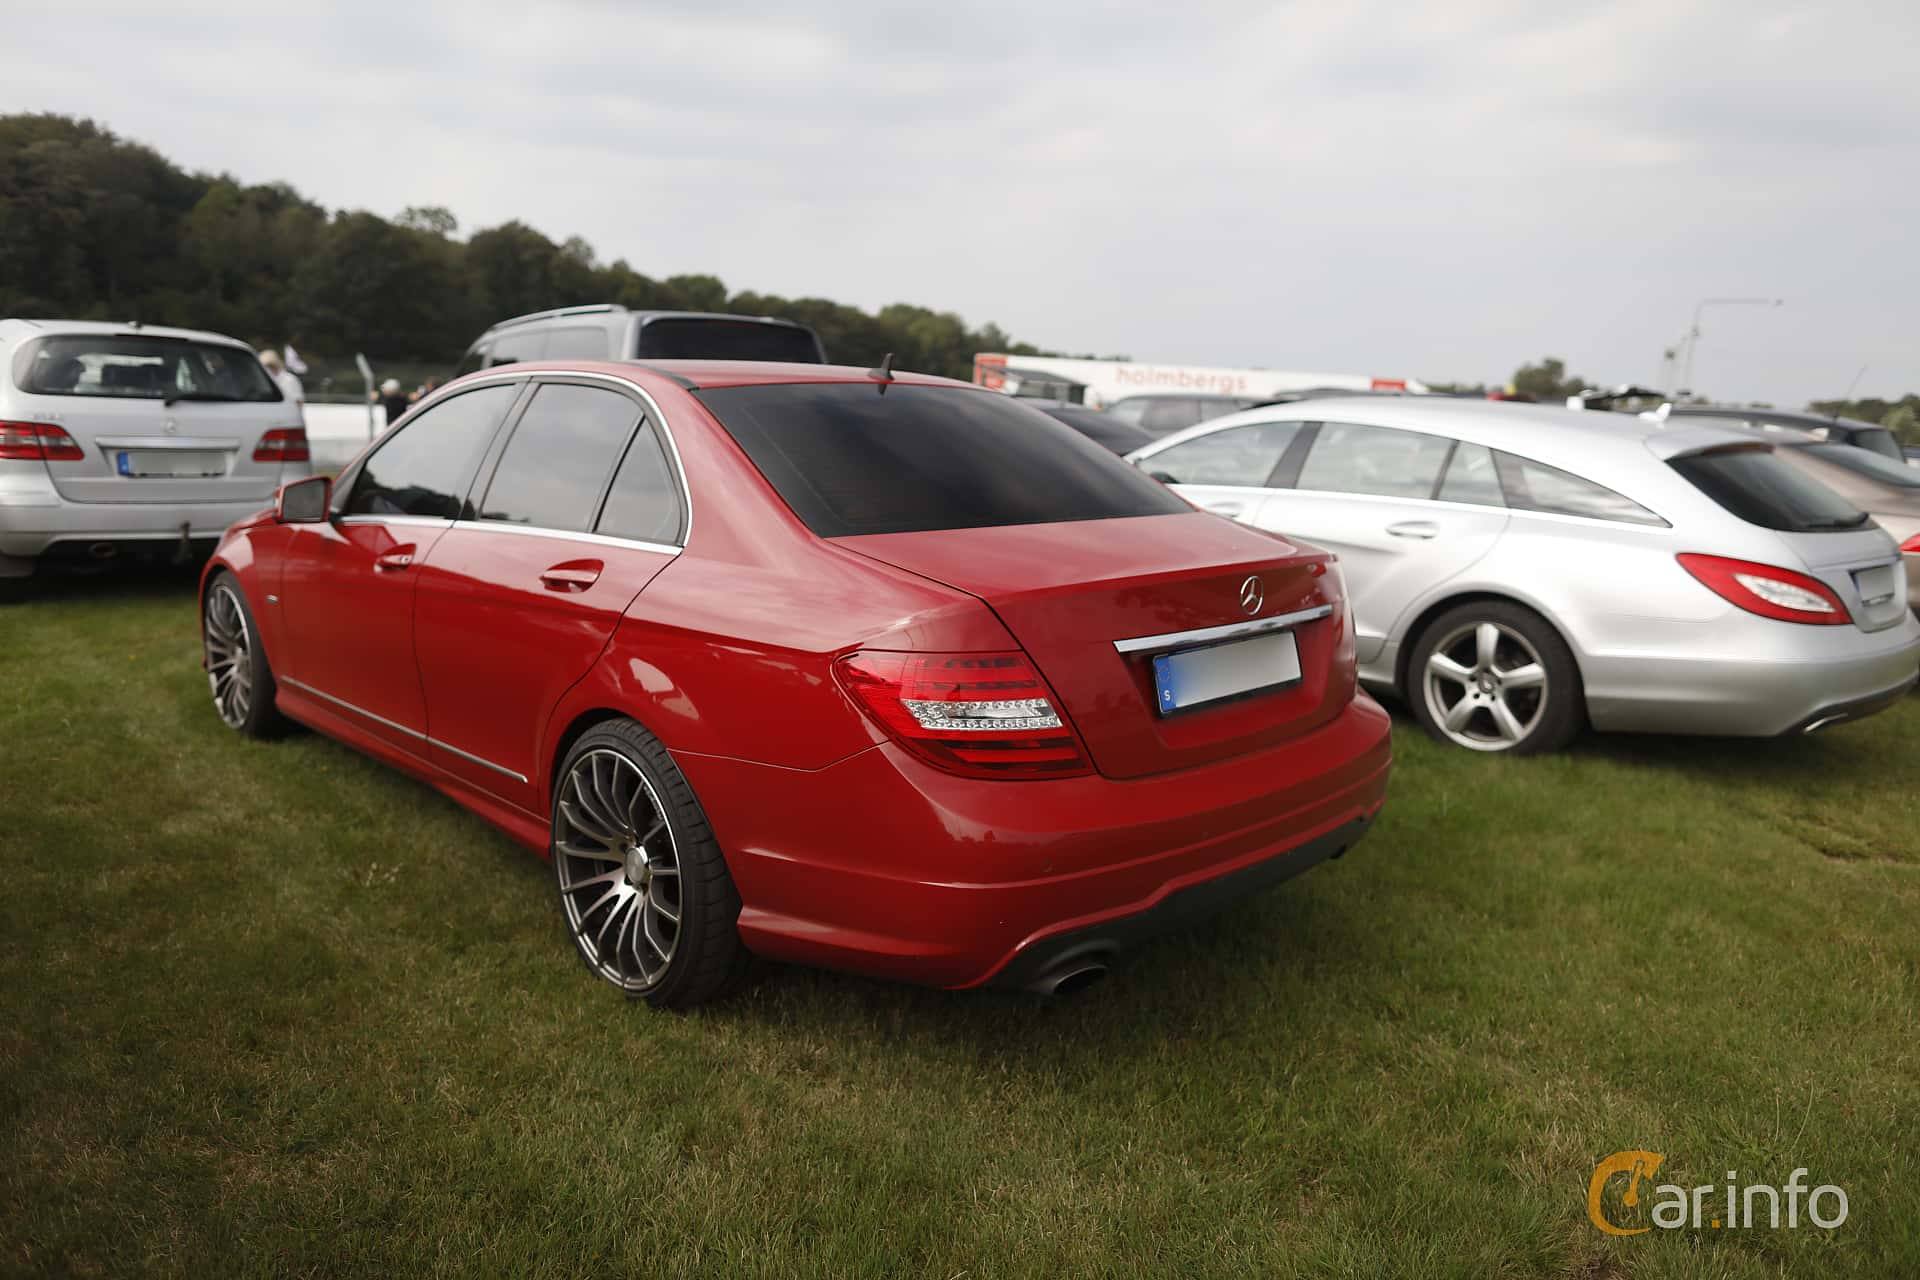 Mercedes-Benz C 180 BlueEFFICIENCY  7G-Tronic Plus, 156hp, 2012 at Autoropa Racing day Knutstorp 2019